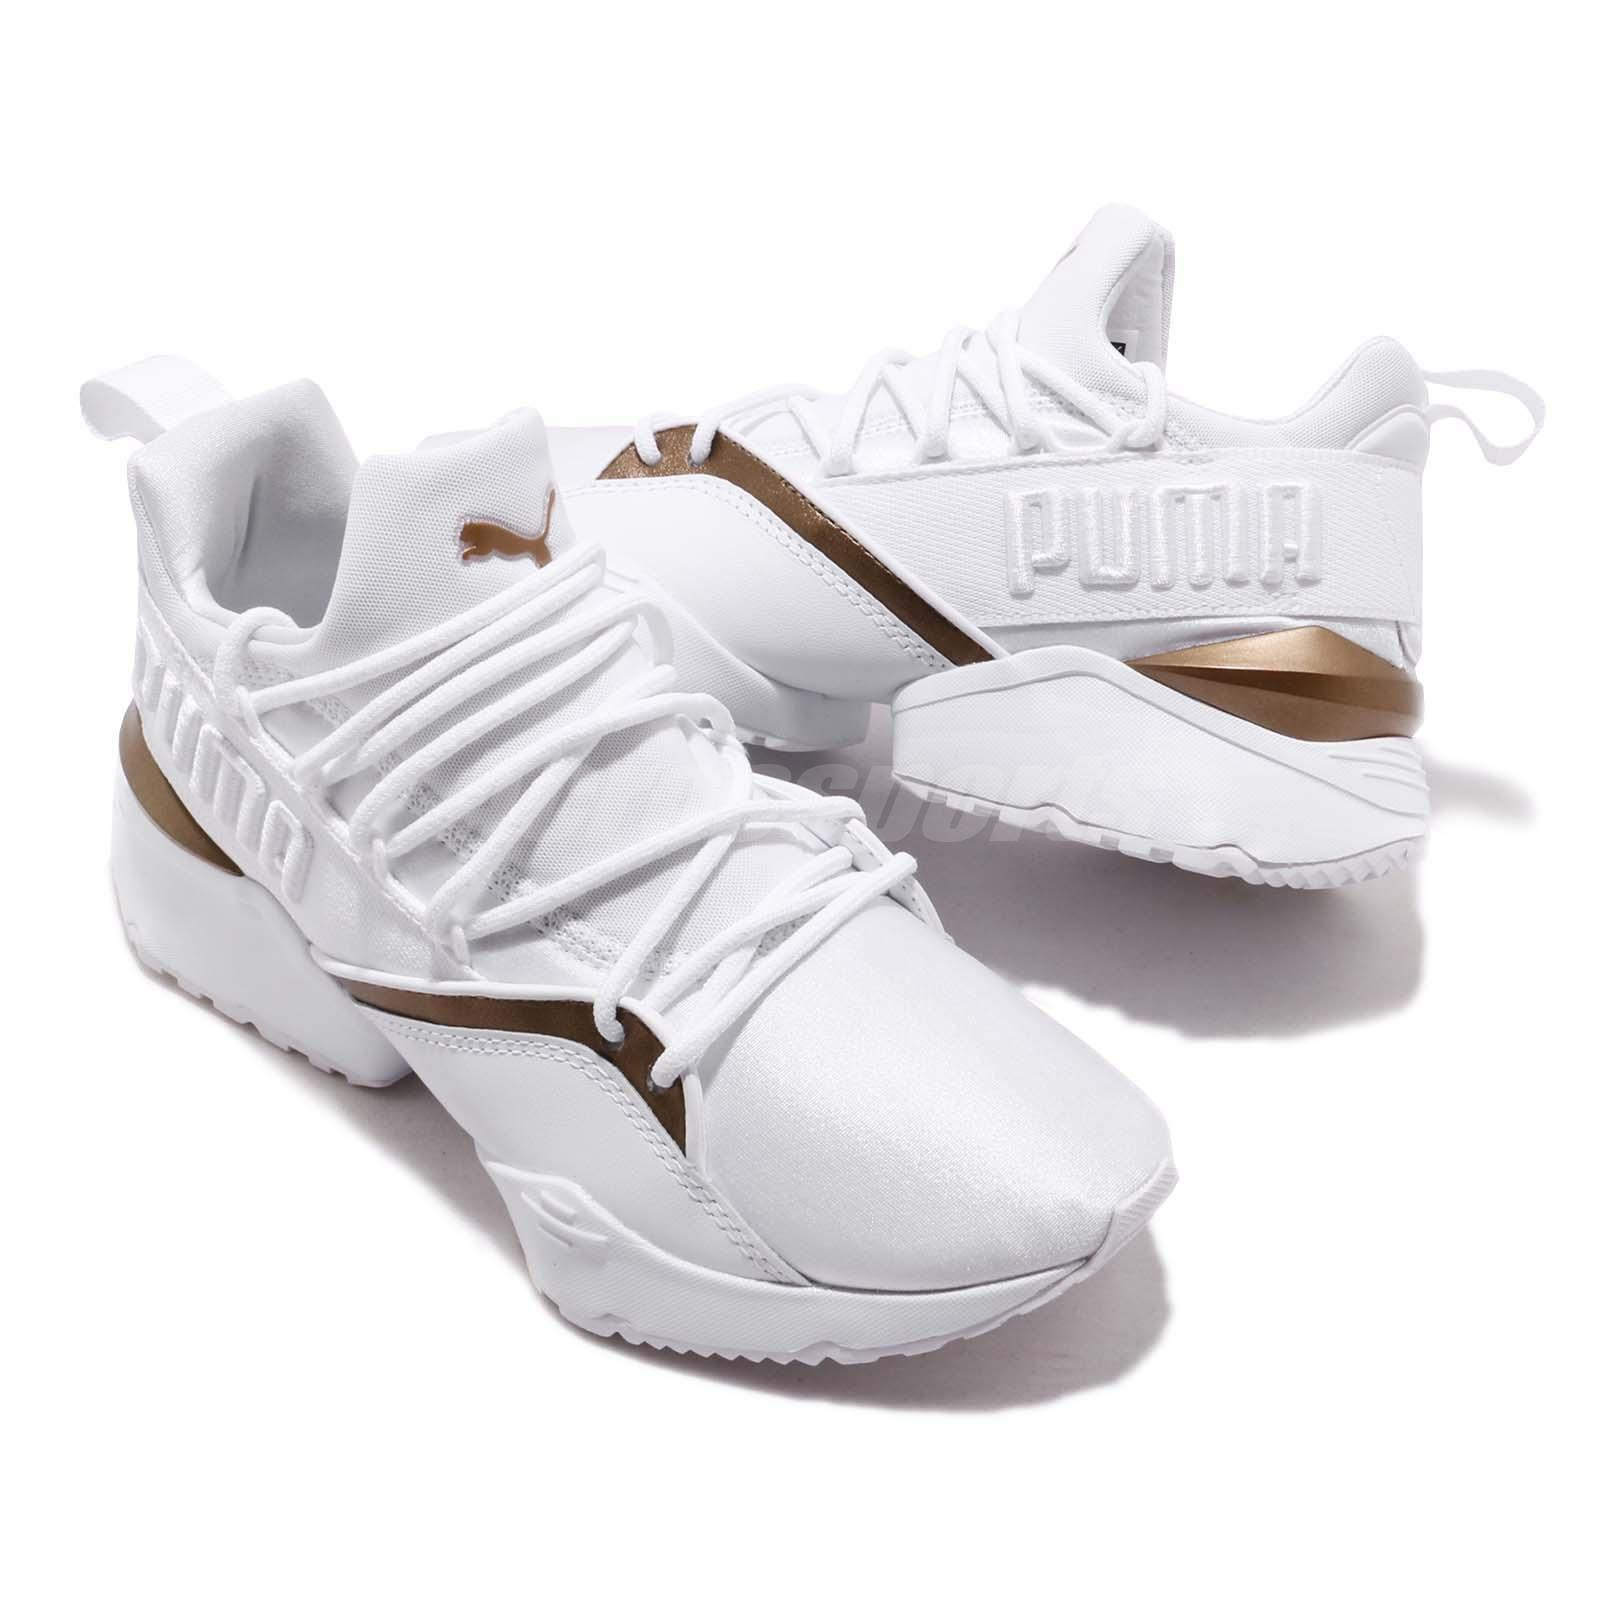 Détails sur Puma Muse Maia Luxe Wns White Women Running Casual Lifestyle Shoes 366766 02